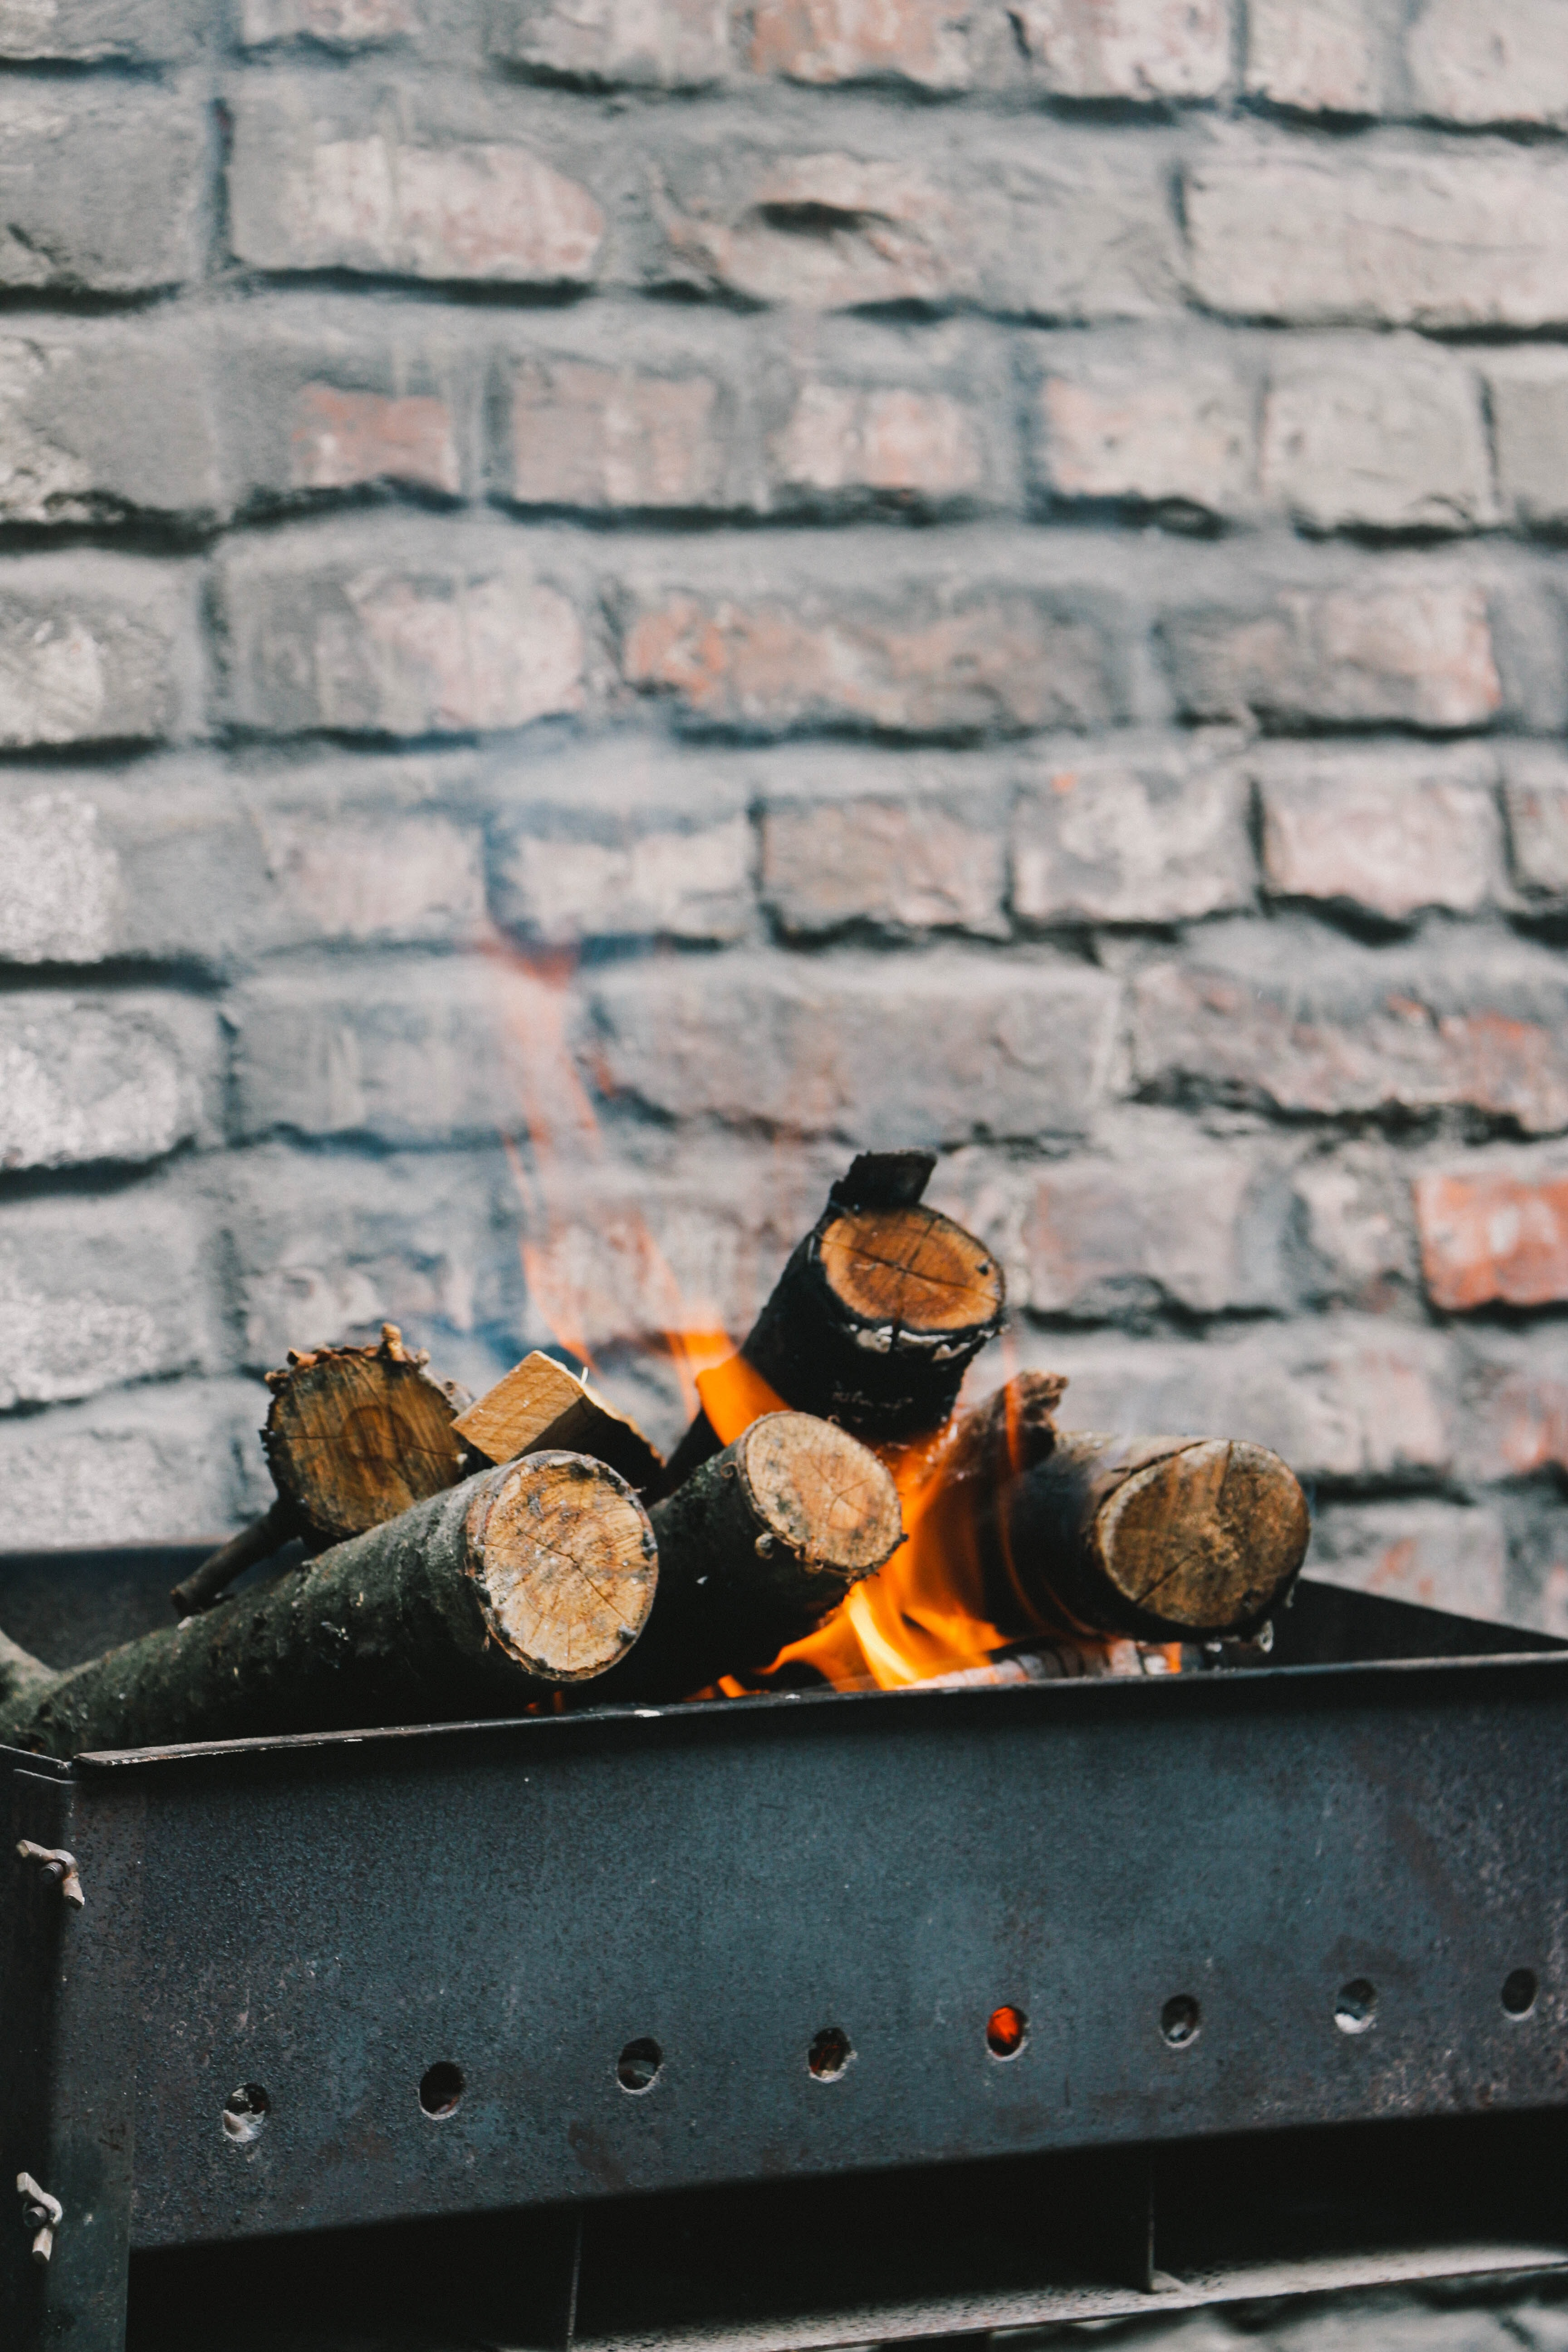 Burning firewood in a brazier next to a brick wall